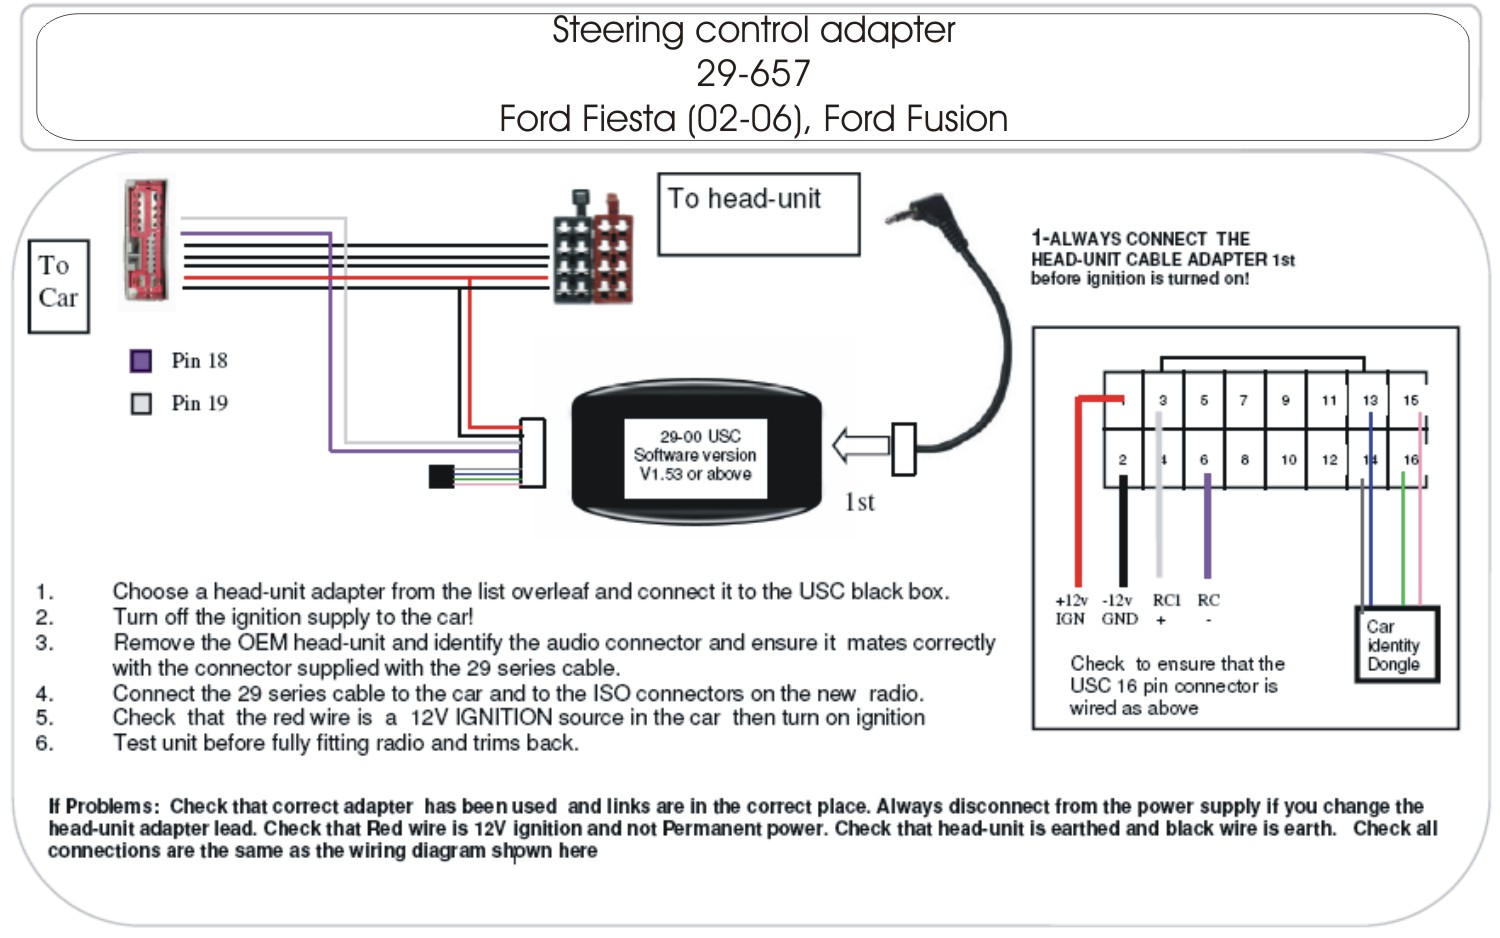 Land Rover Remote Start Wiring Diagram on land rover service manuals, land rover exhaust, land rover all models, land rover rear axle, land rover braking system, land rover engine, land rover torque specs, land rover paint codes, land rover timing marks, land rover water pump replacement, land rover dimensions, land rover tools, land rover radio wiring, range rover wiring diagrams, land rover belt routing, land rover discovery, land rover brakes, land rover fuel system, land rover schematics, land rover troubleshooting,